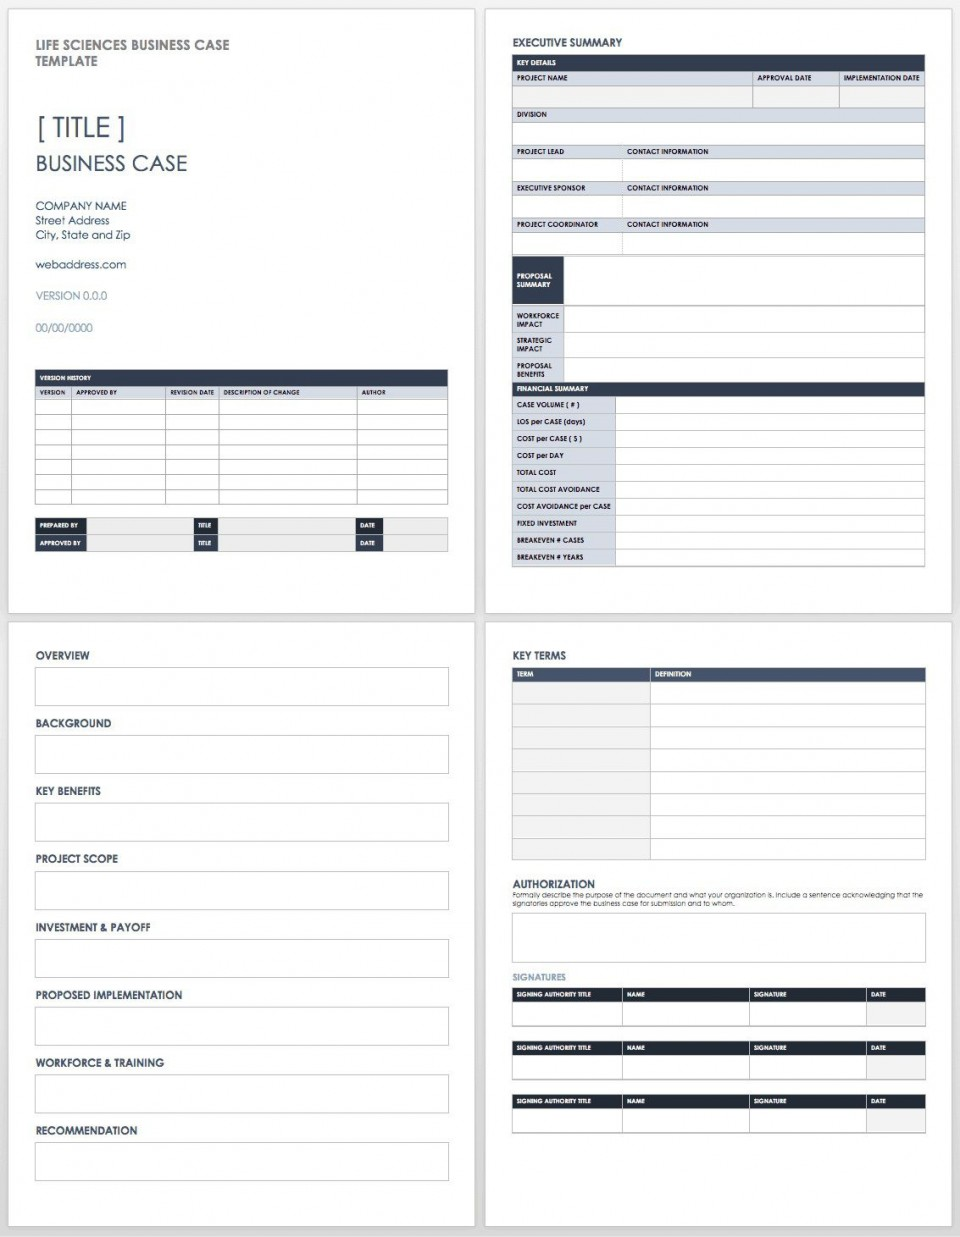 000 Amazing Use Case Template Word Design  Doc Test960